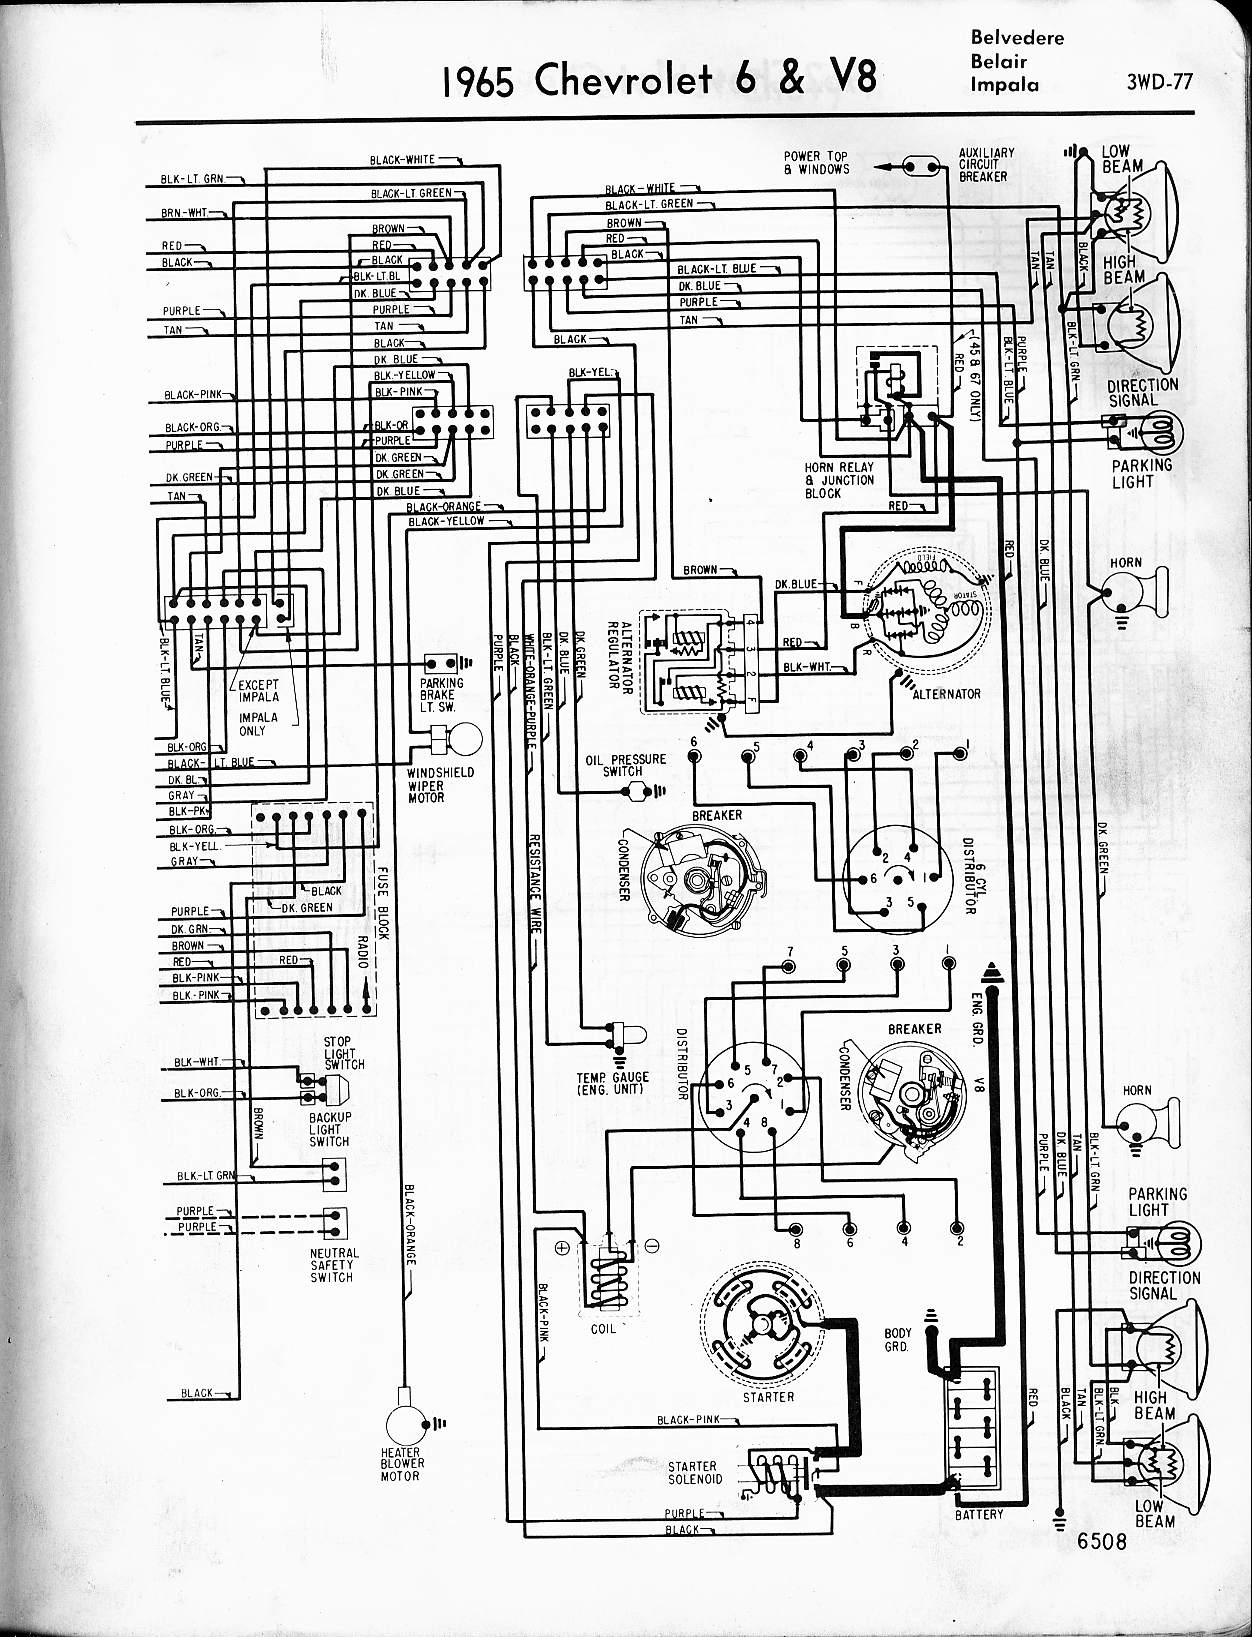 Chevy Diagrams 1964 Lincoln Continental Fuse Box 1965 Impalla Wiring Diagram Figure A B